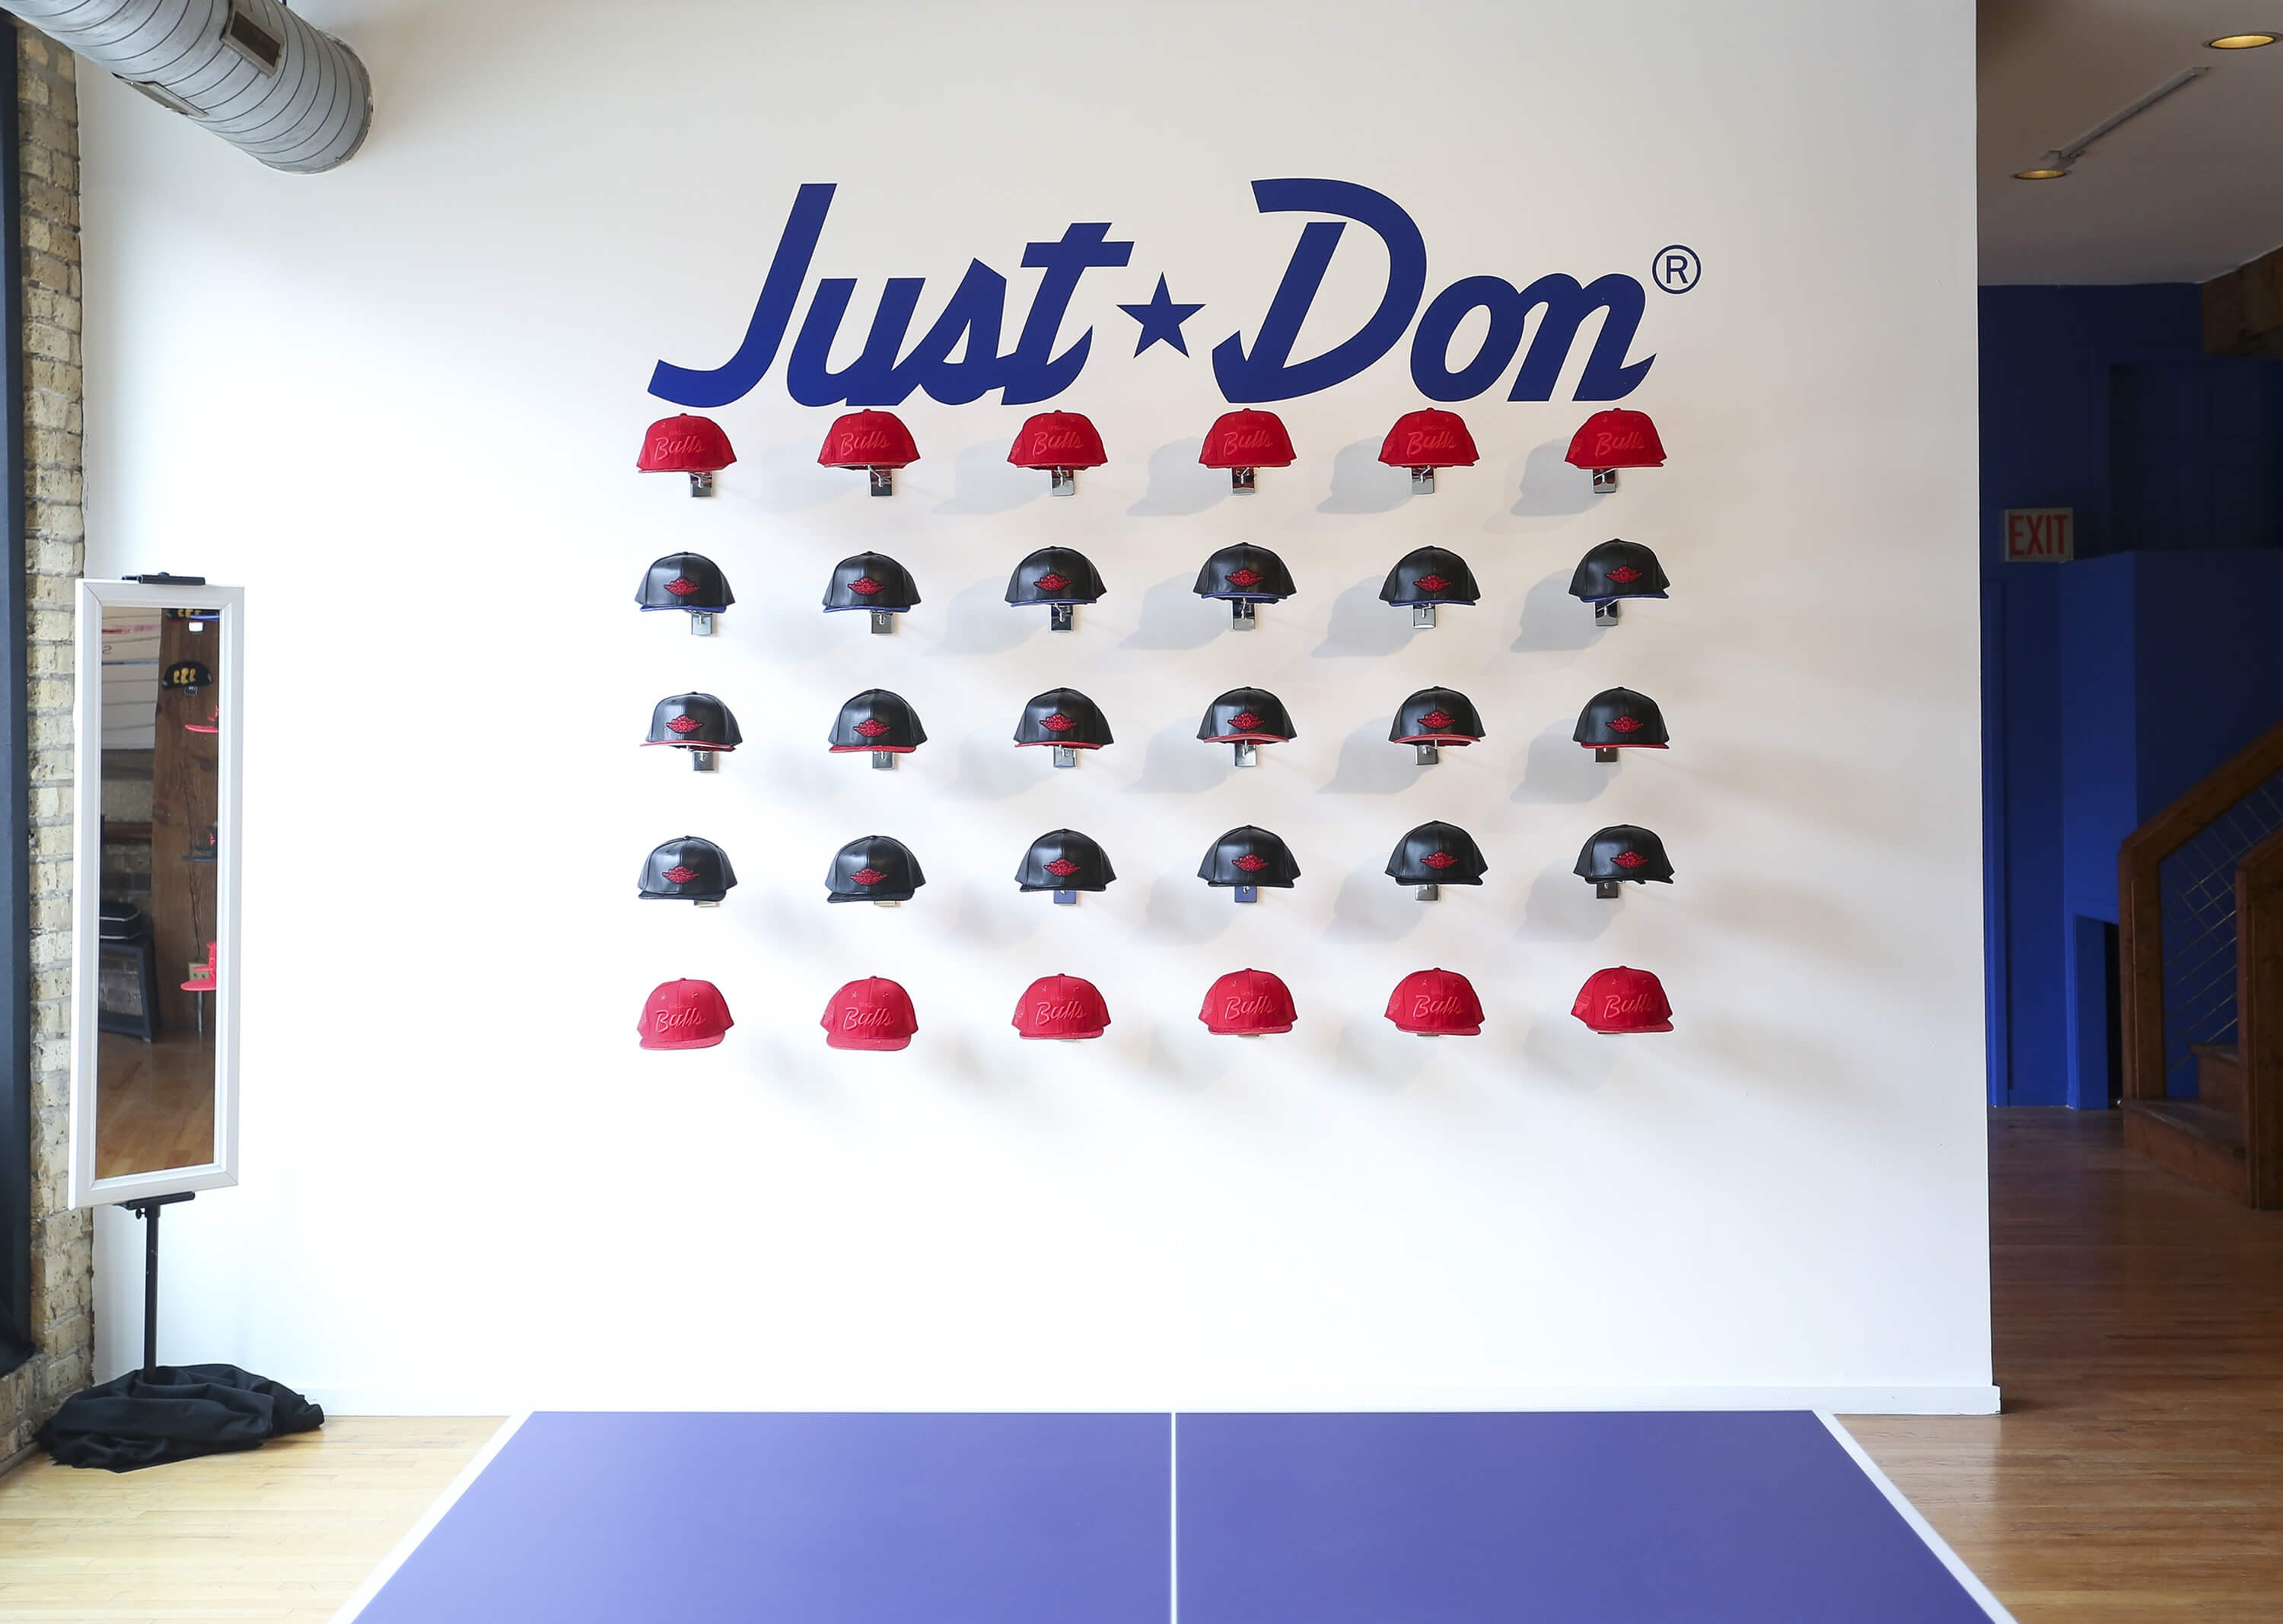 JUST DON JORDAN 2 POP UP SHOP